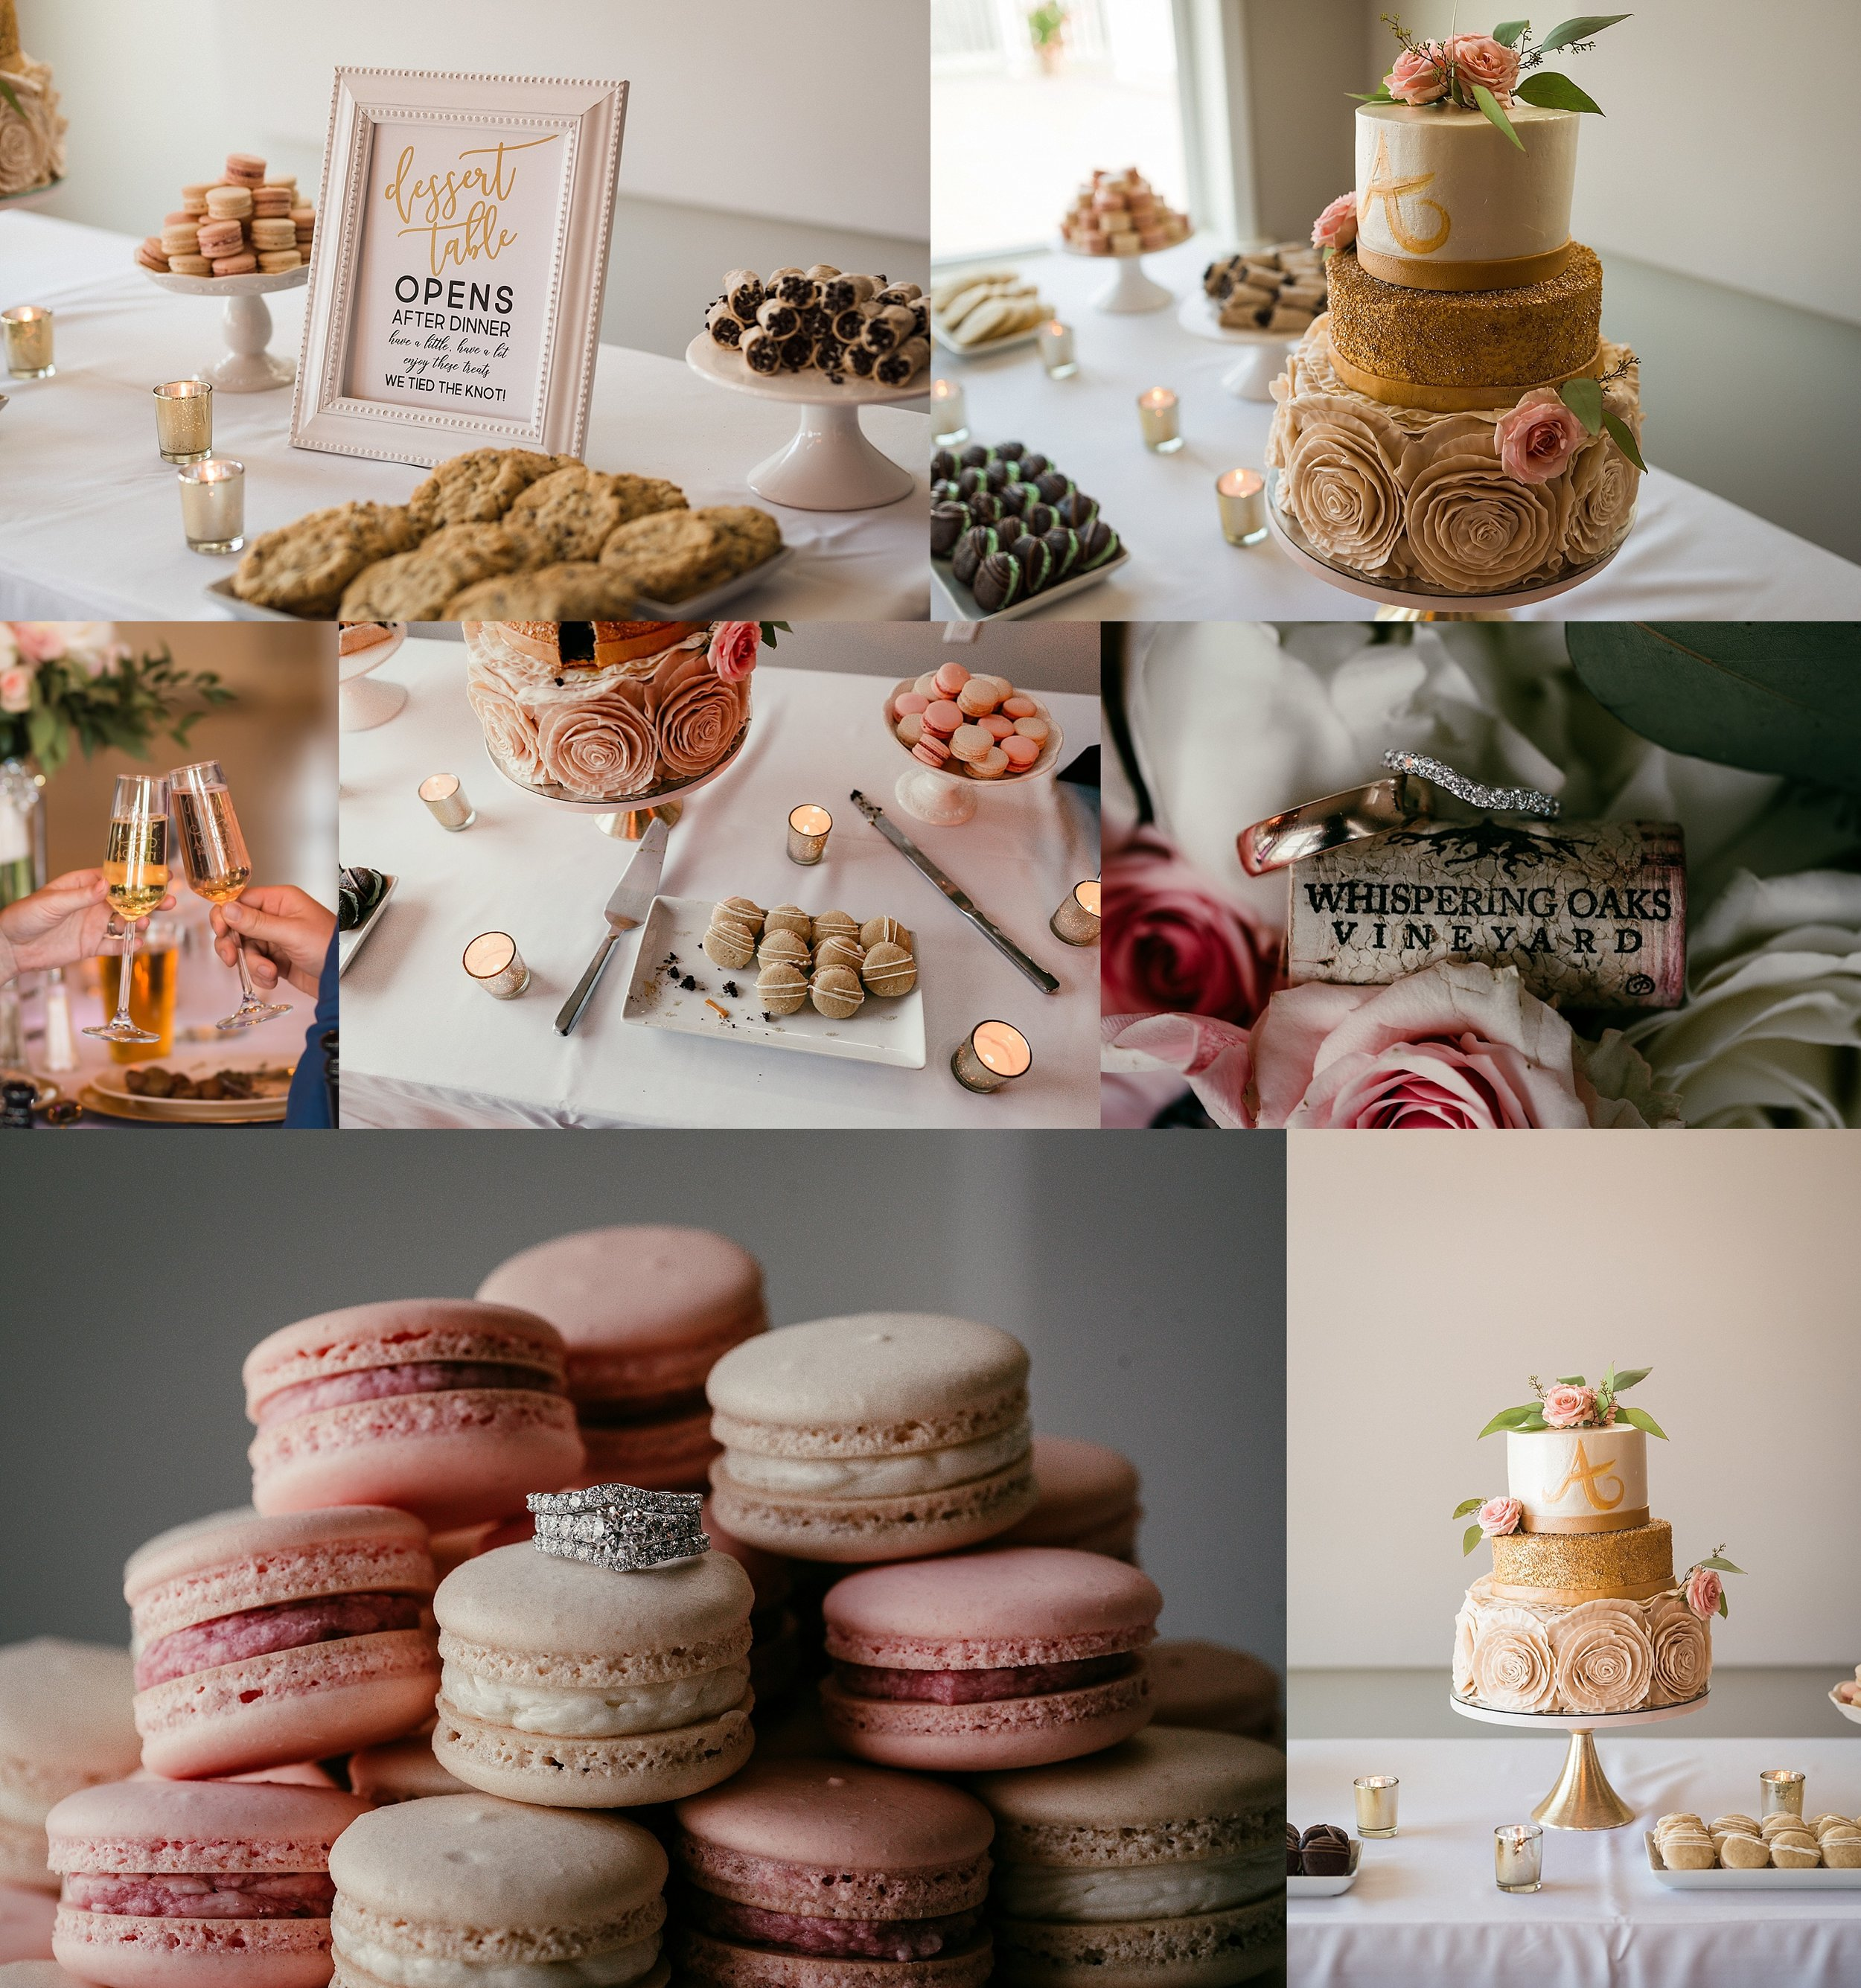 So many gorgeous, delicious cakes! Every table had its own custom cake and each were so detailed. I can get down with this trend. :-P  Cakes by:  Gable House Bakery